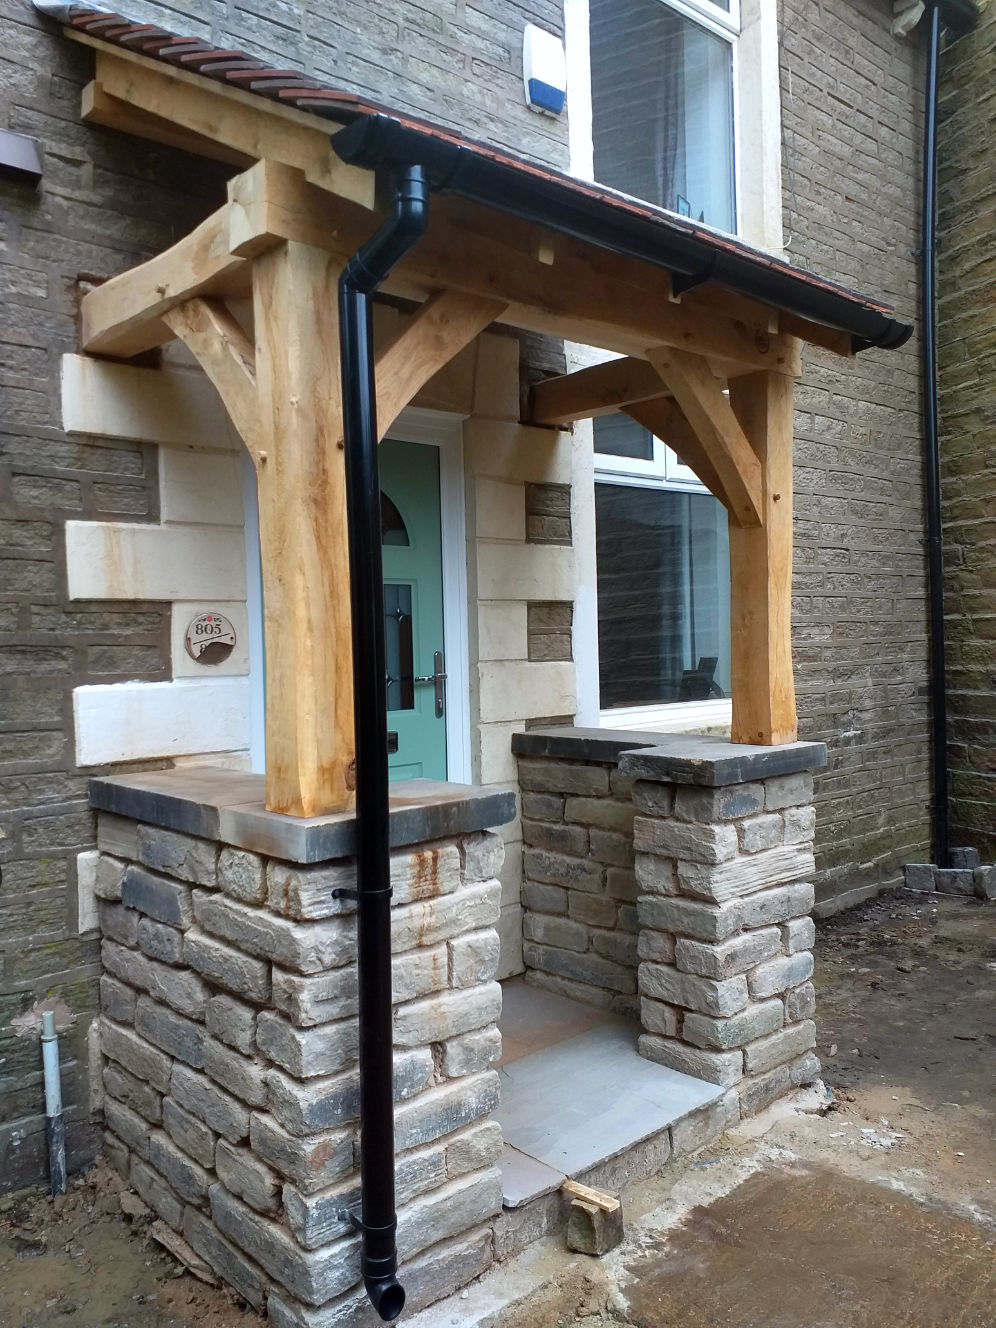 Side view, Porch with traditional Oak Frame, stone work, pitched roof complete with rain gutters